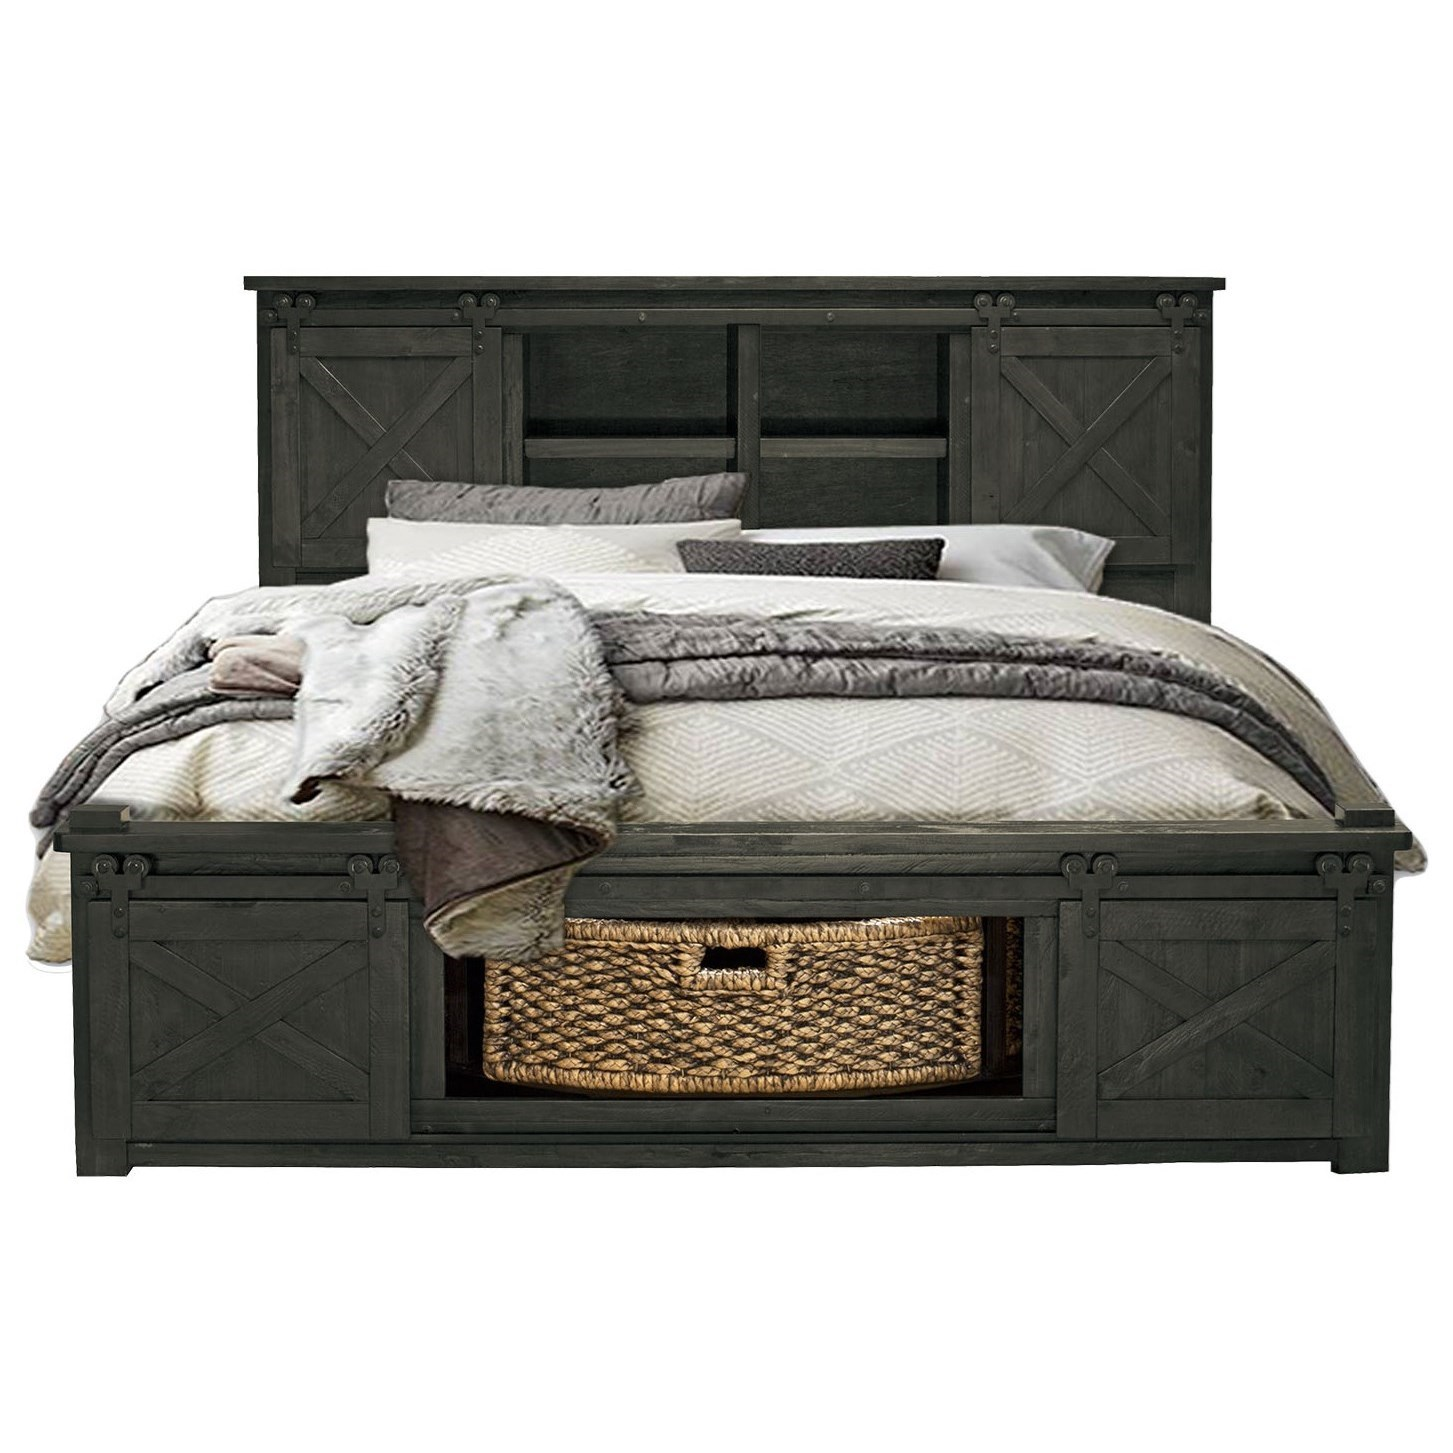 Sun Valley King Bed with Rotating Storage by A-A at Walker's Furniture